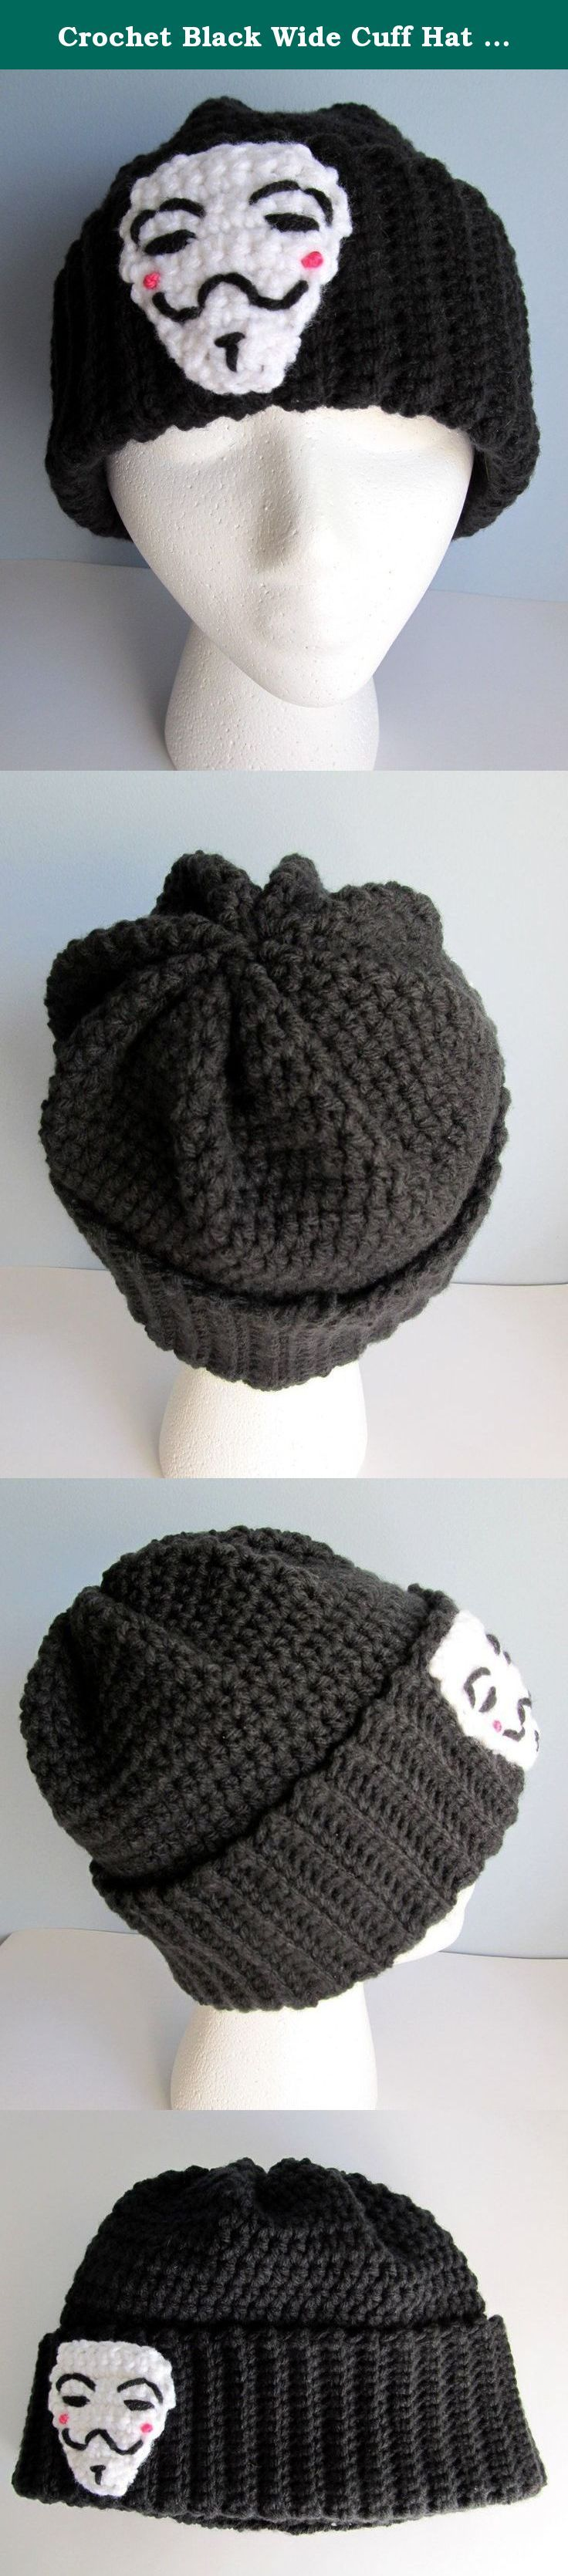 """Crochet Black Wide Cuff Hat / V for Vendetta Slouch Beanie / Knit Black Embellished Anonymous Hat/ Remember the 5th of November / Guy Fawkes Knit Cap. Remember, remember the 5th of November V for Vendetta inspired Crochet black beanie hat is stitched using super warm 4 ply 100% acrylic yarn. Extra wide cuff is 3"""" and crocheted in a rib stitch to create a snug fit to the forehead. The 8 point star top gives the hat a unique look and feel. Folded cuff provides extra warmth from winters…"""